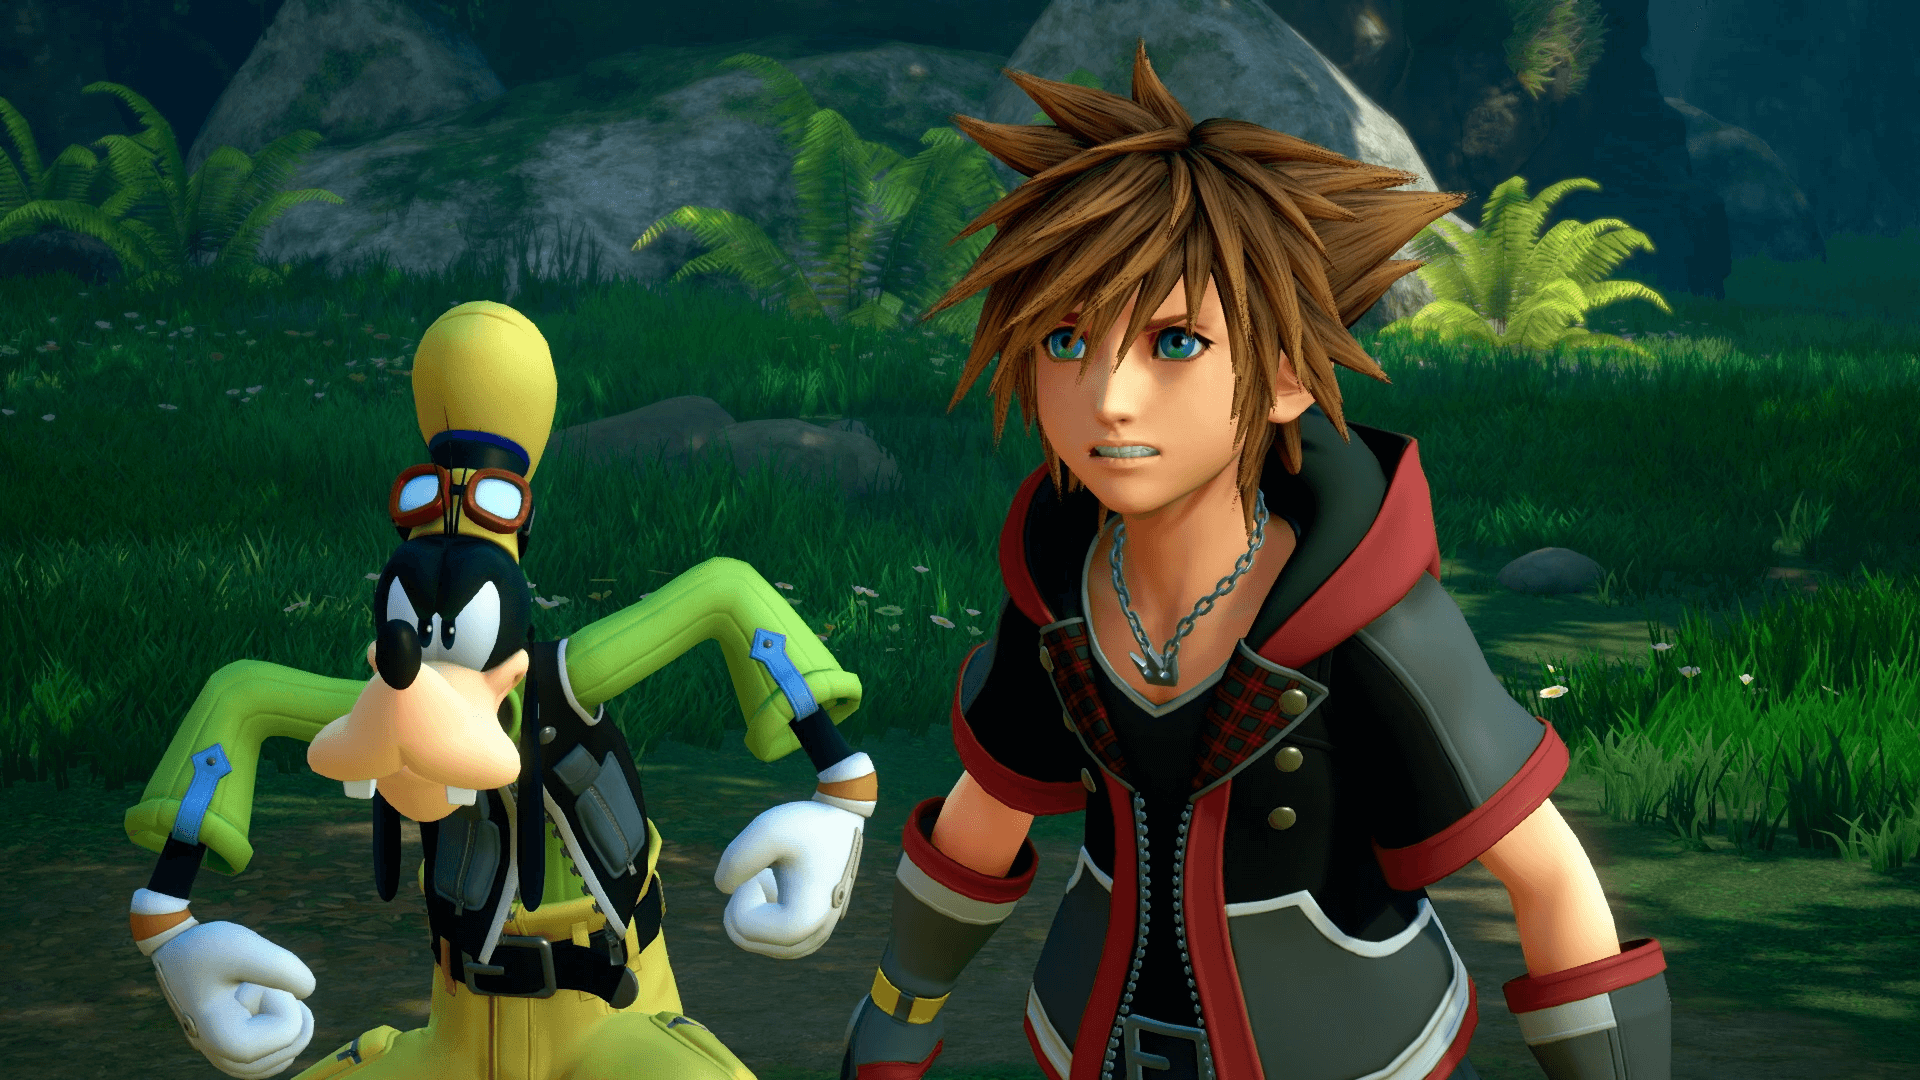 Goofy's ready for anything in Kingdom Hearts 3.